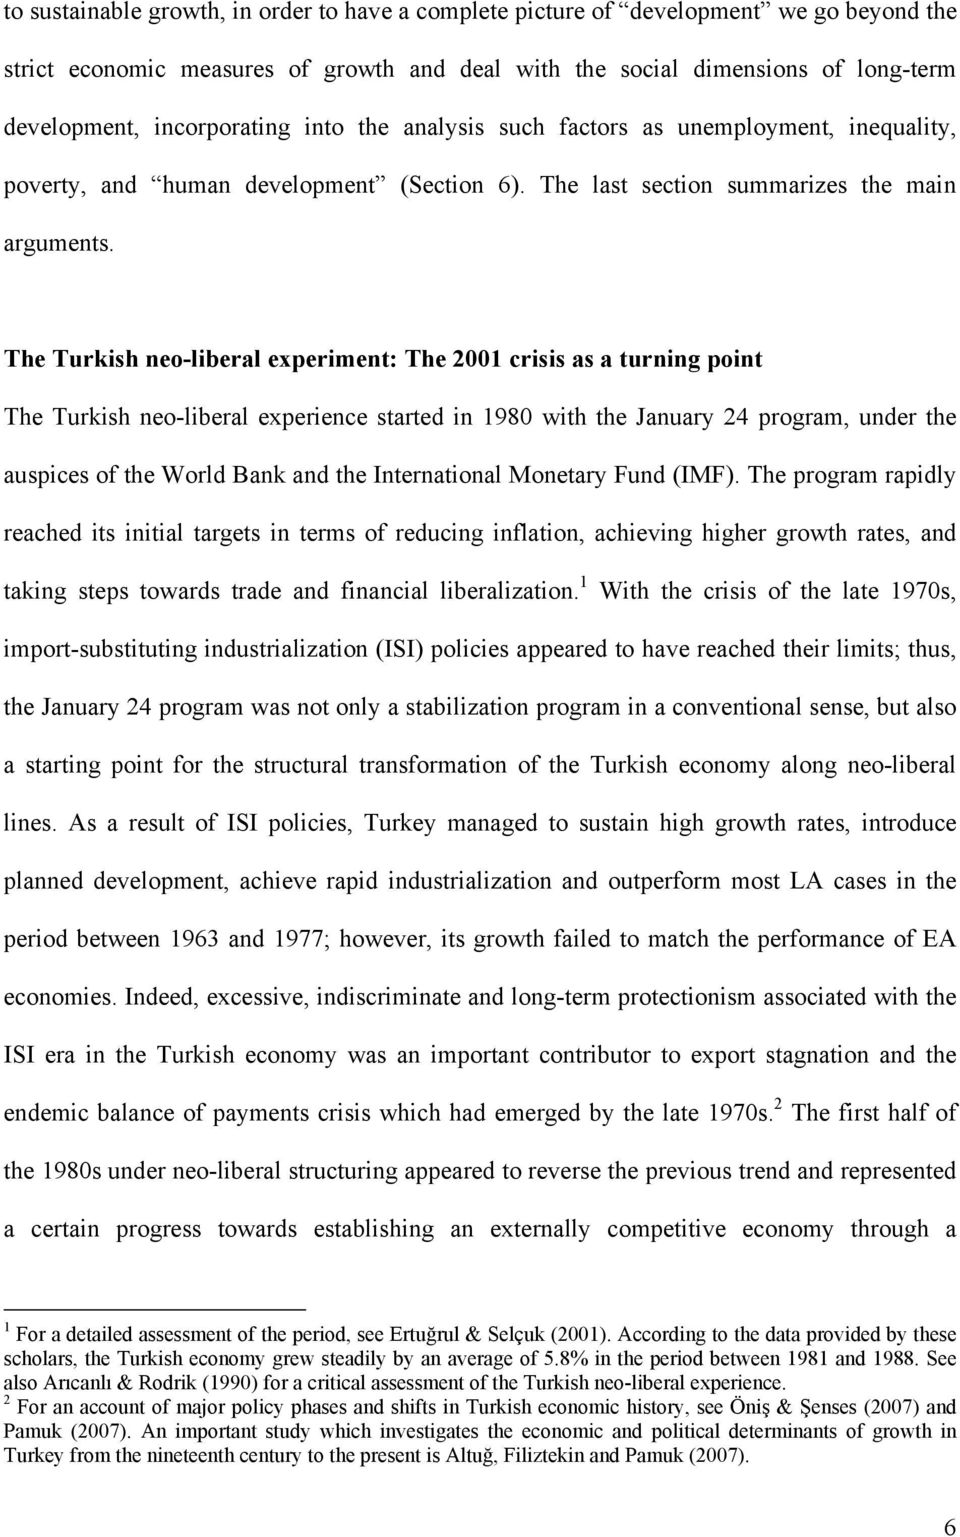 The Turkish neo-liberal experiment: The 2001 crisis as a turning point The Turkish neo-liberal experience started in 1980 with the January 24 program, under the auspices of the World Bank and the